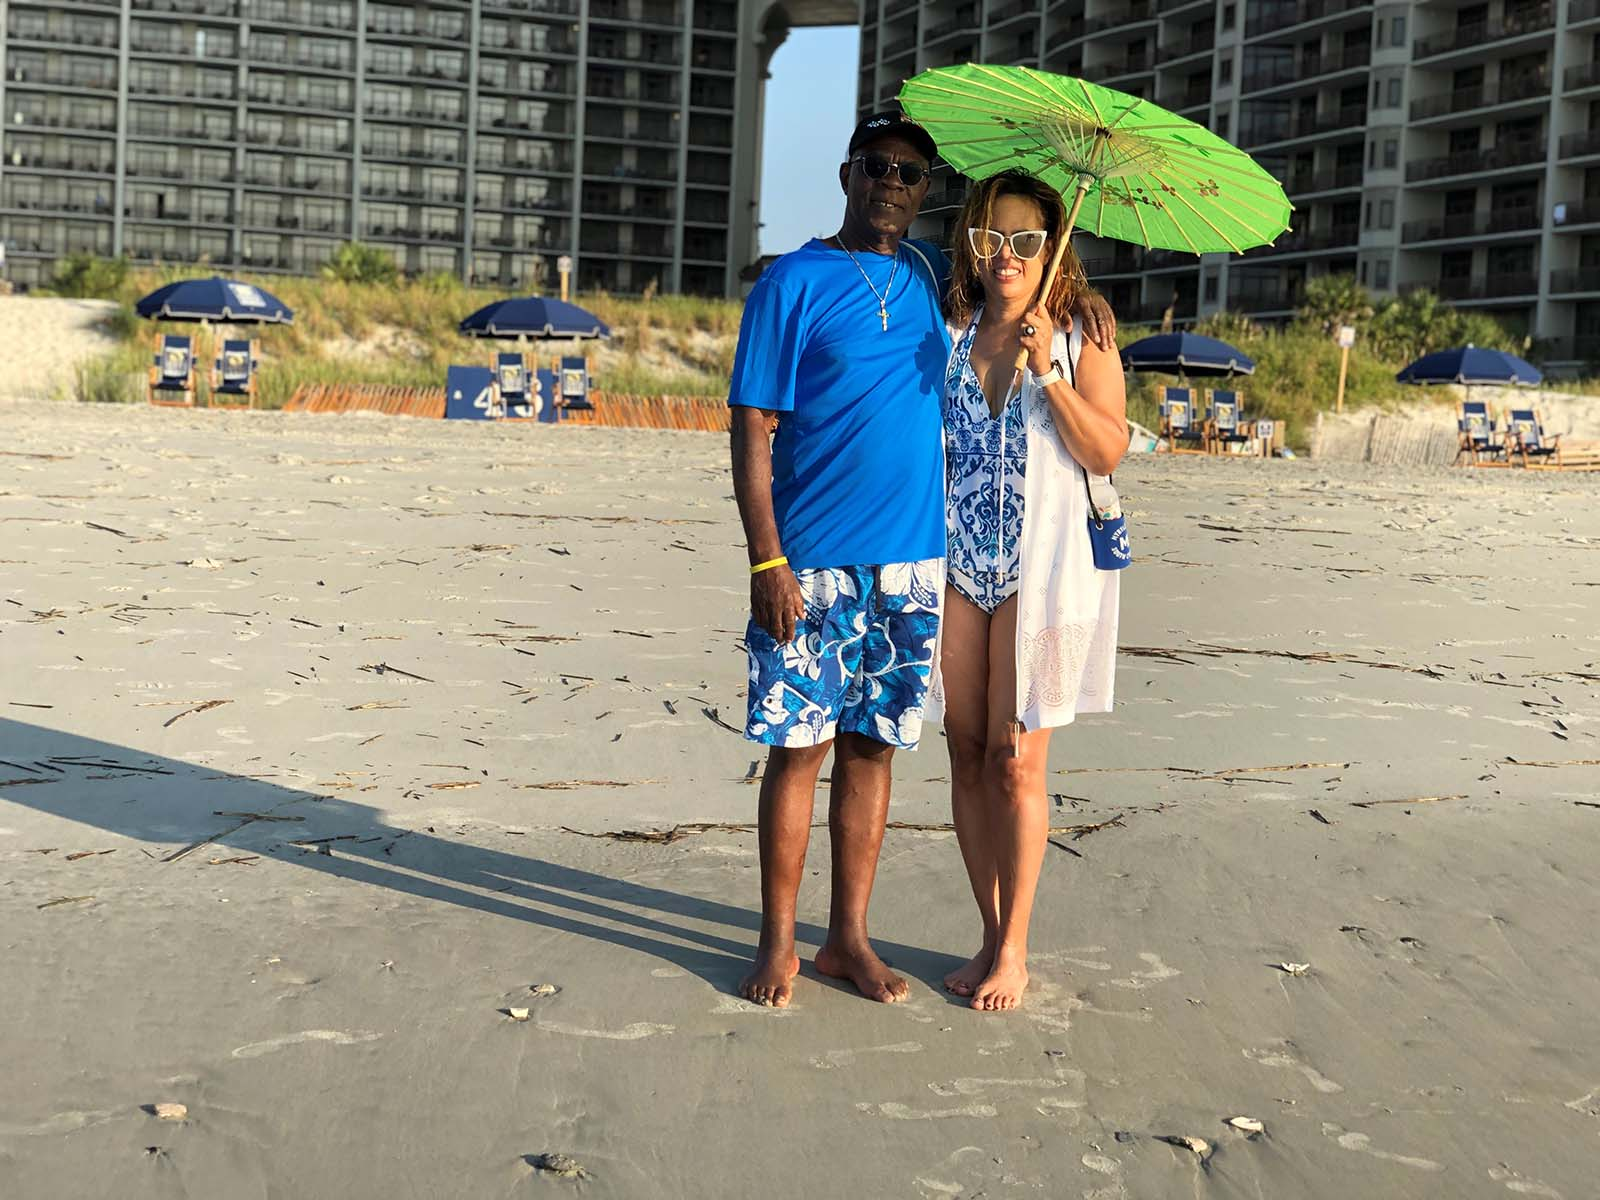 Older couple on beach with green umbrella